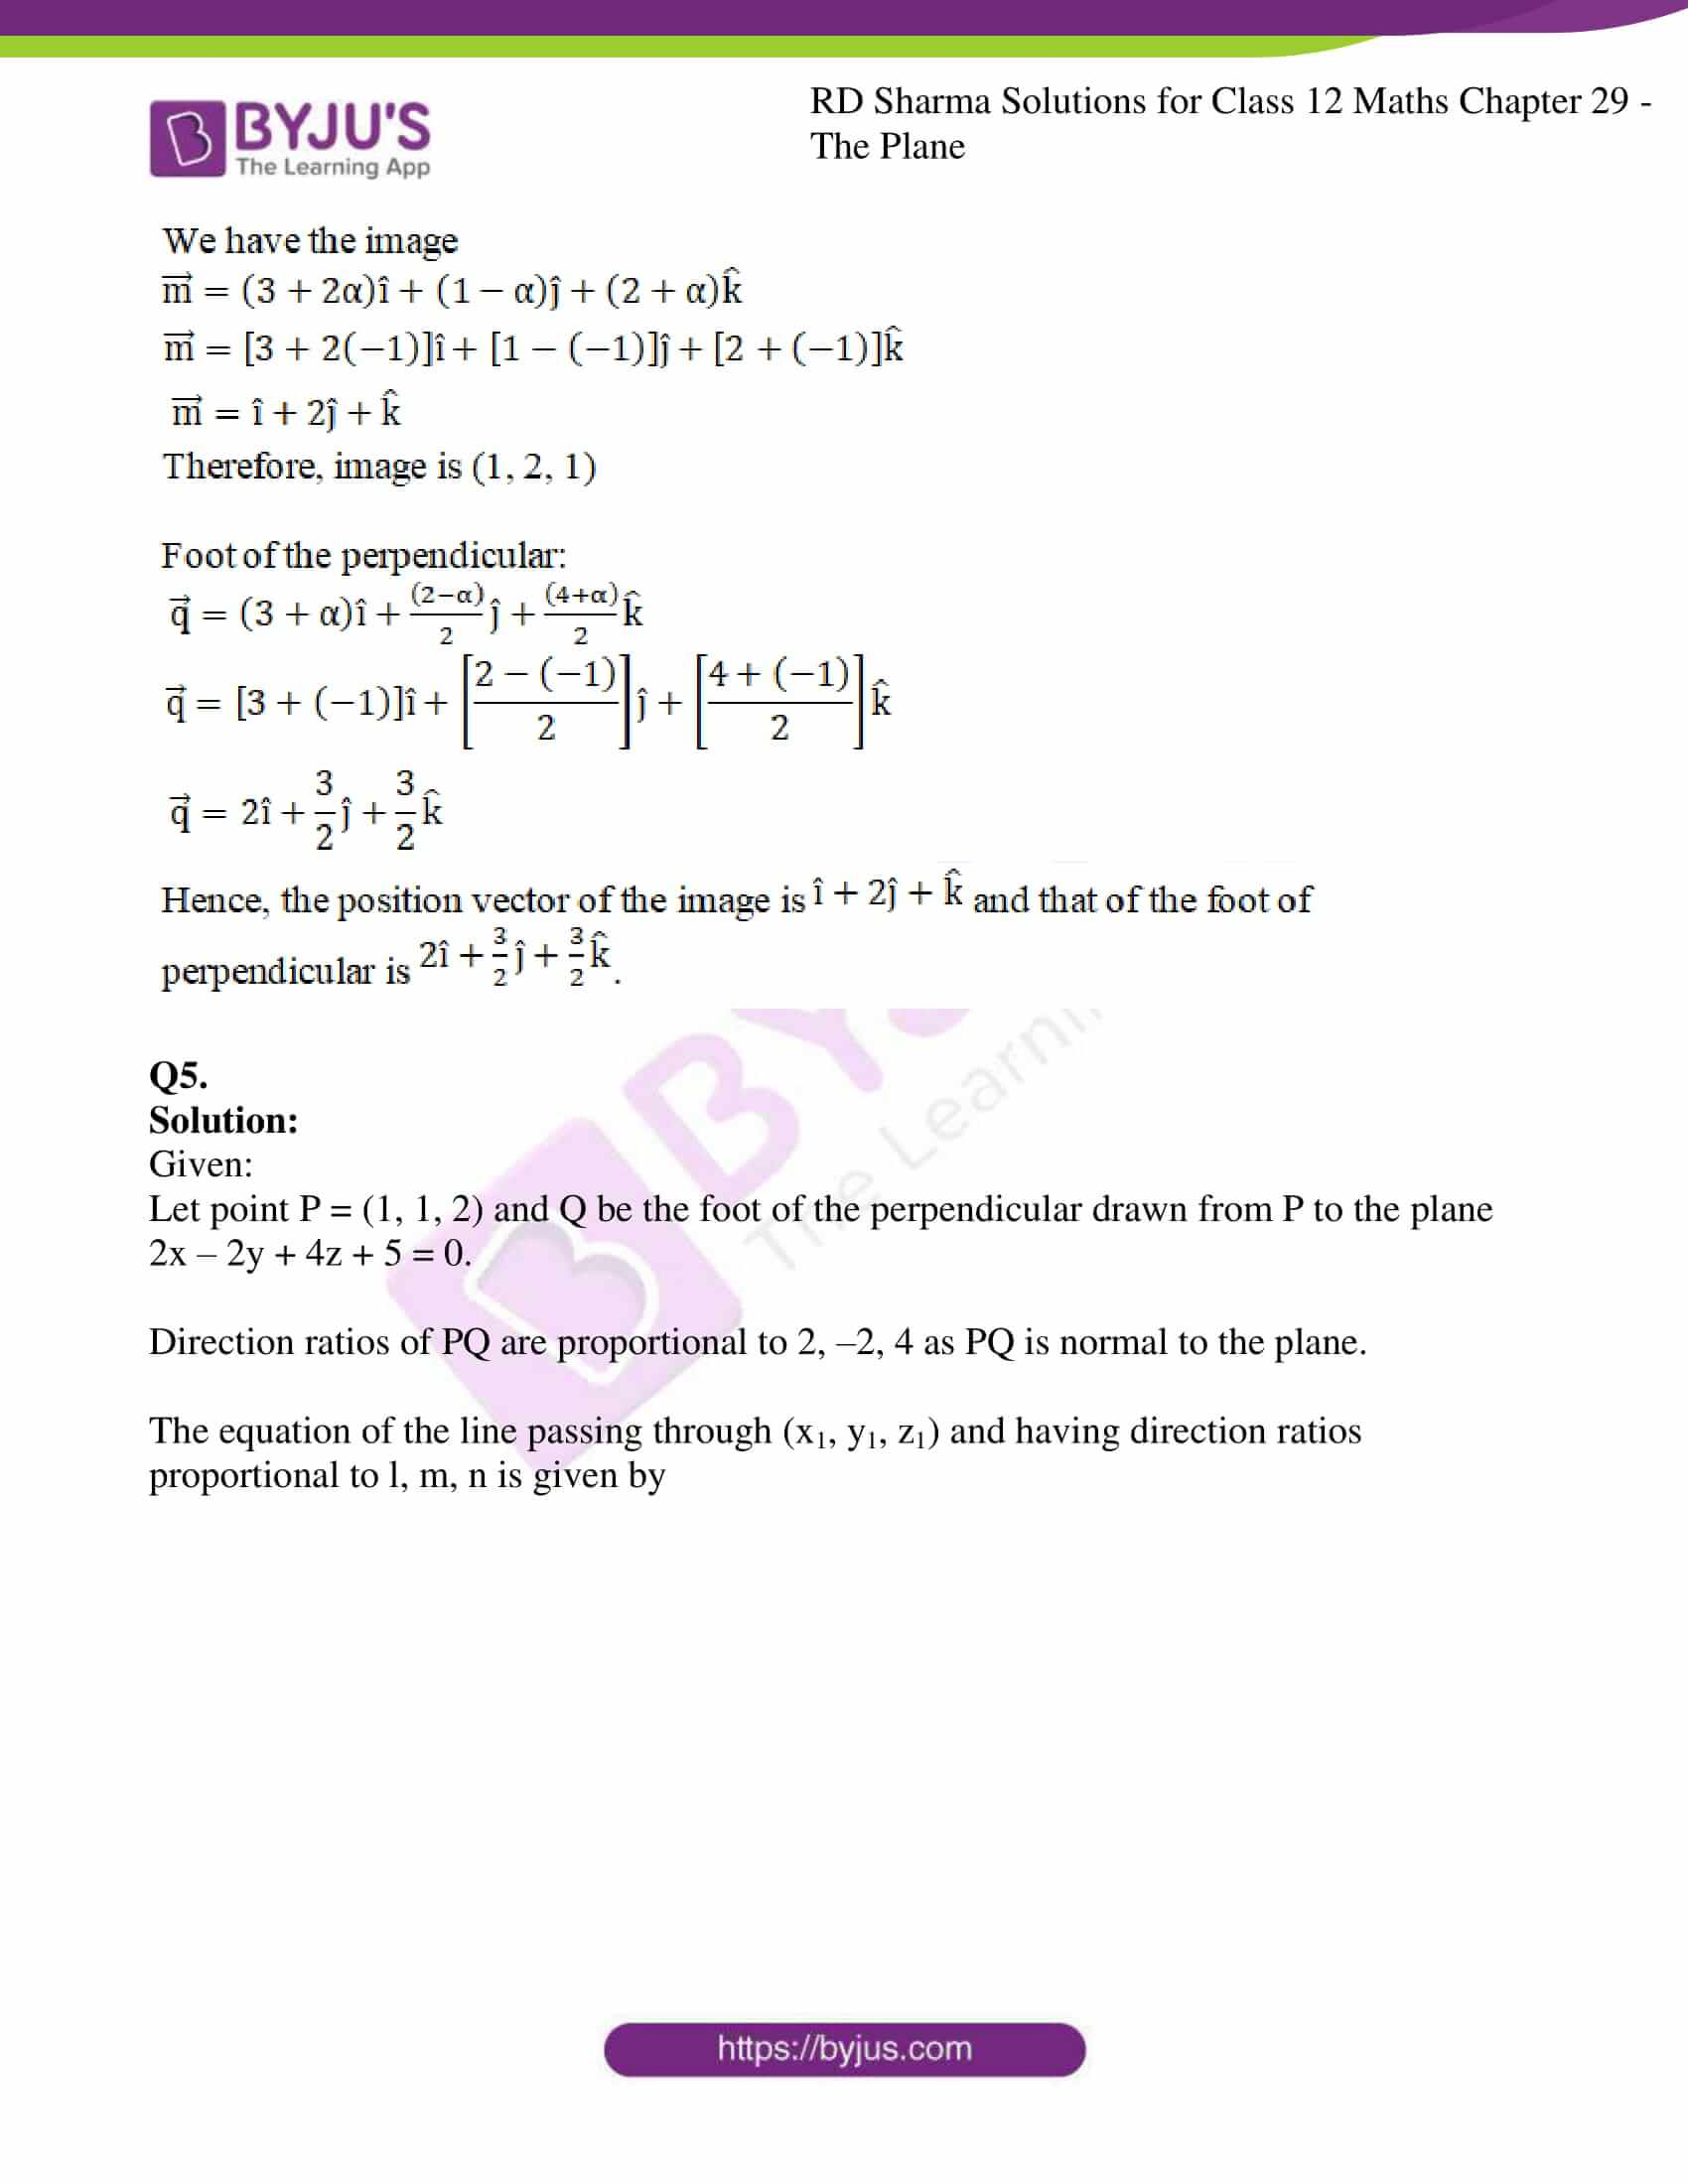 rd sharma solutions for class 12 maths chapter 29 ex 15 7